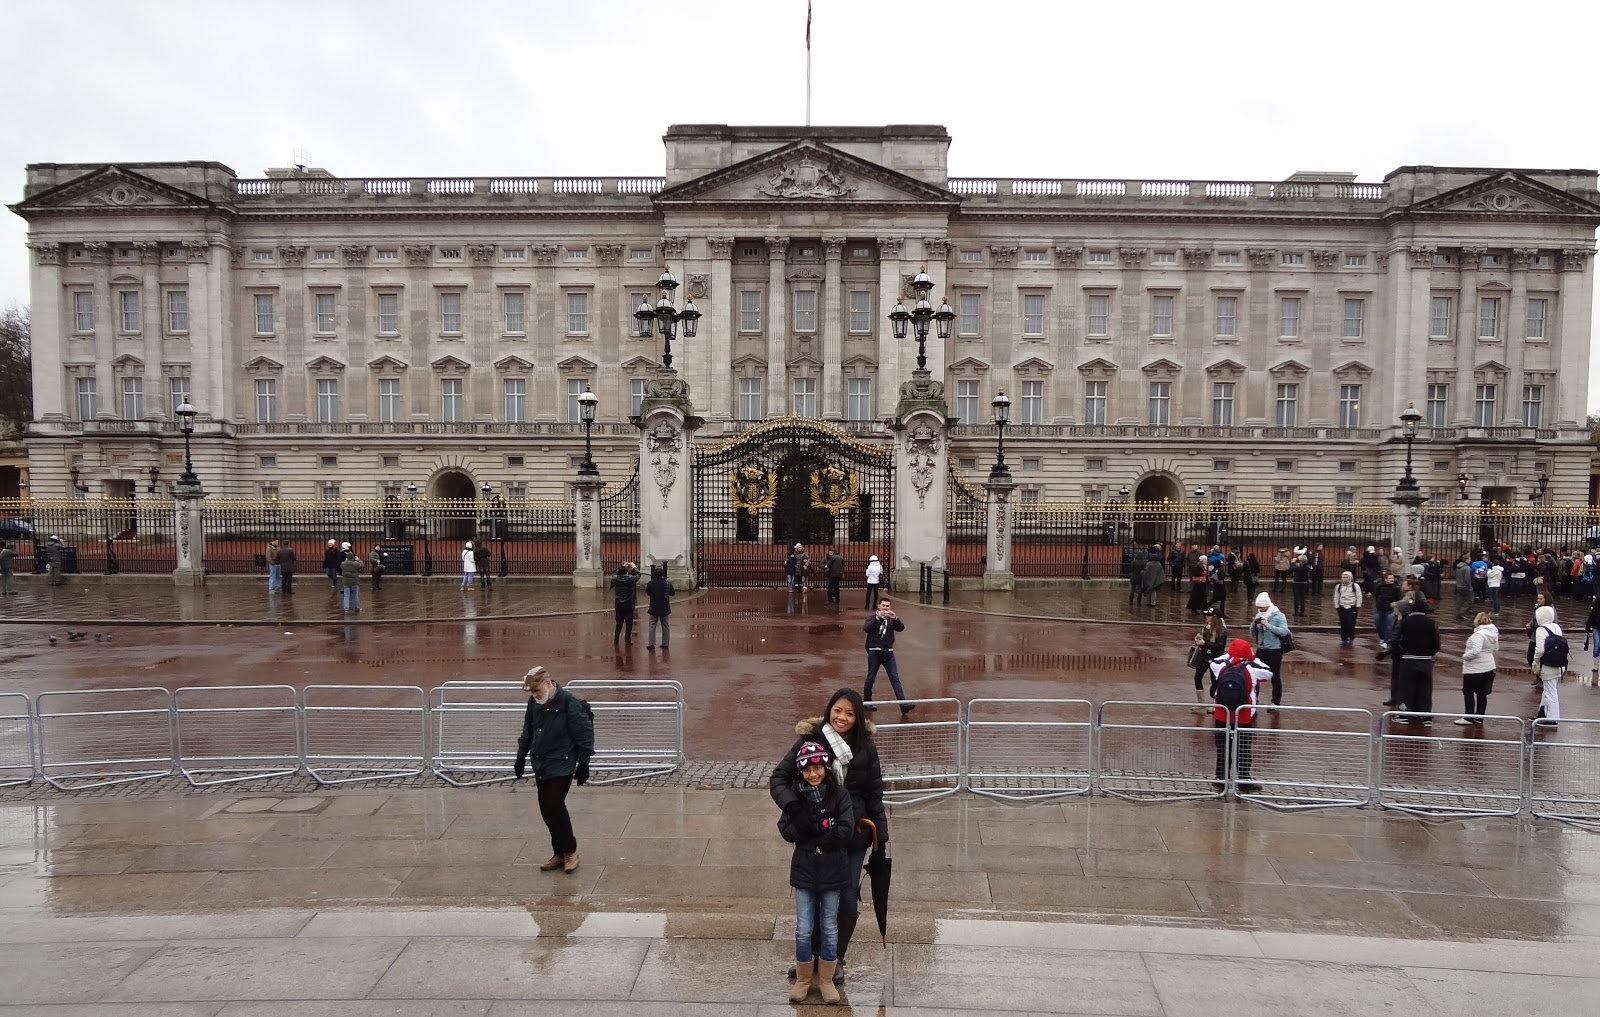 Buckingham Palace Private Apartments http://greateatshawaii.blogspot.com/2012/01/buckingham-palace-london-england.html